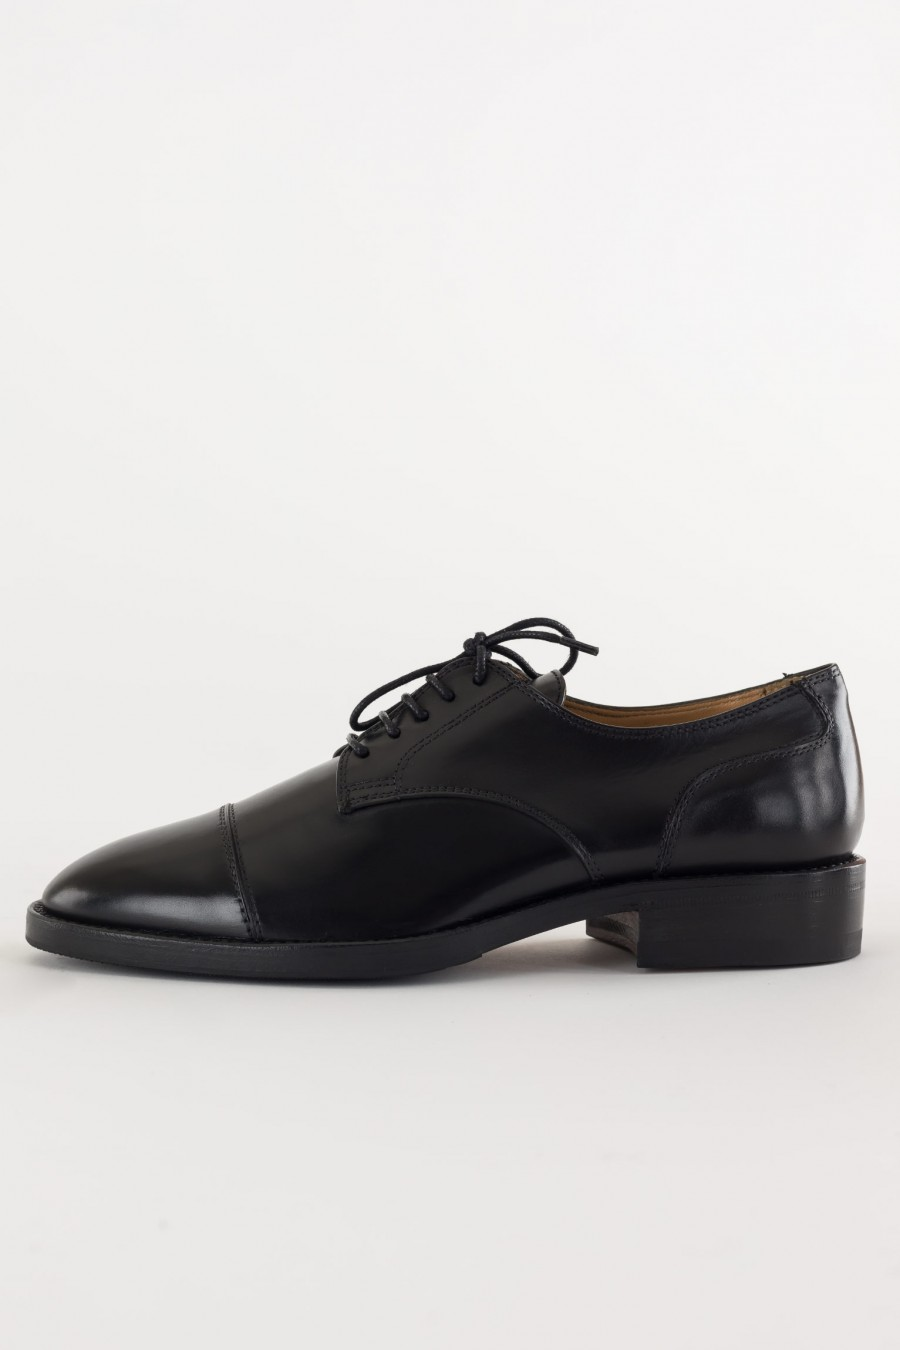 Flat elegant shoes